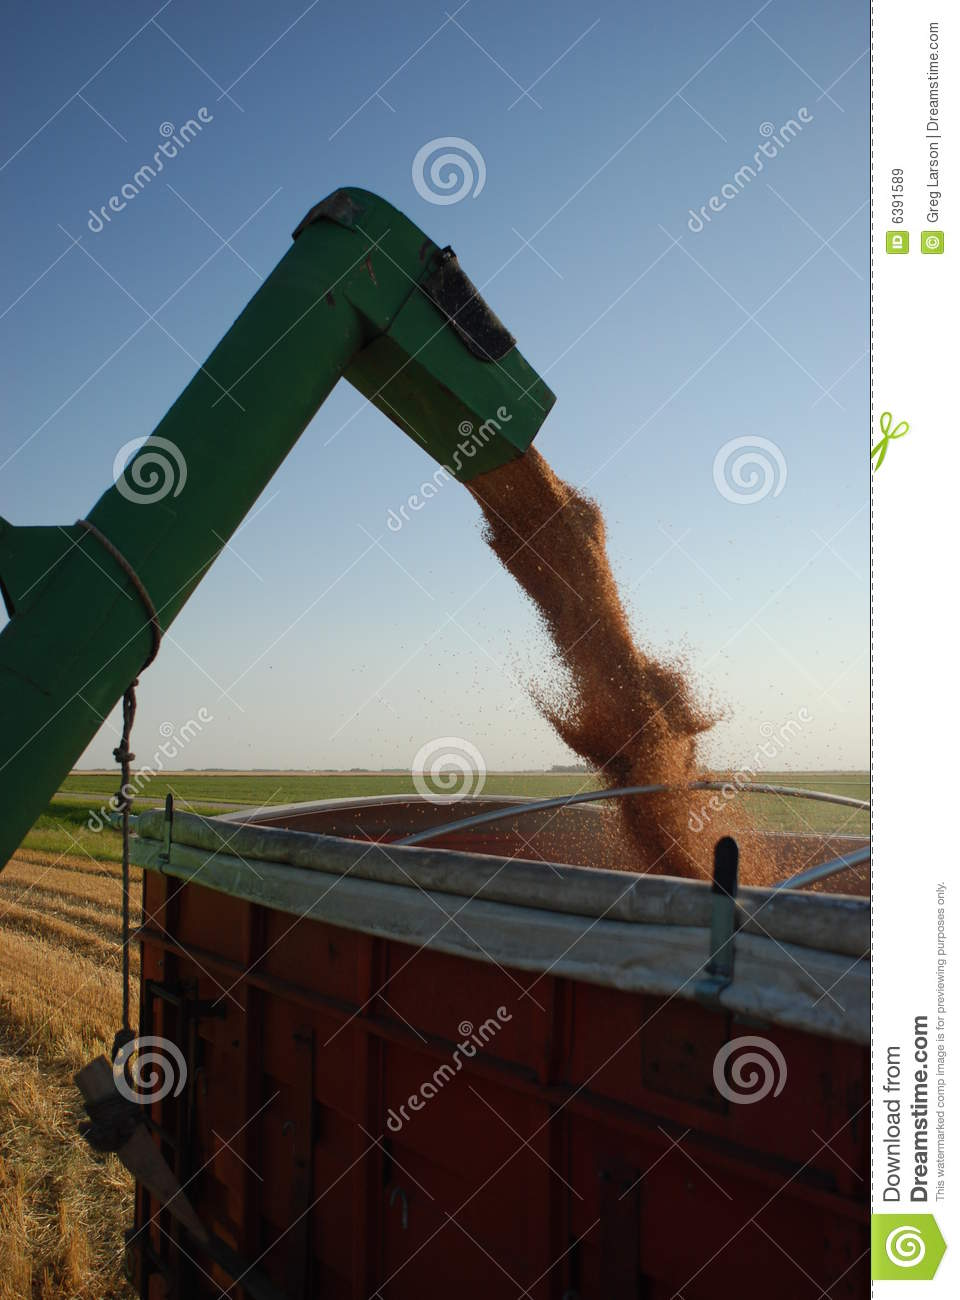 Grain Auger stock image  Image of minnesota, agriculture